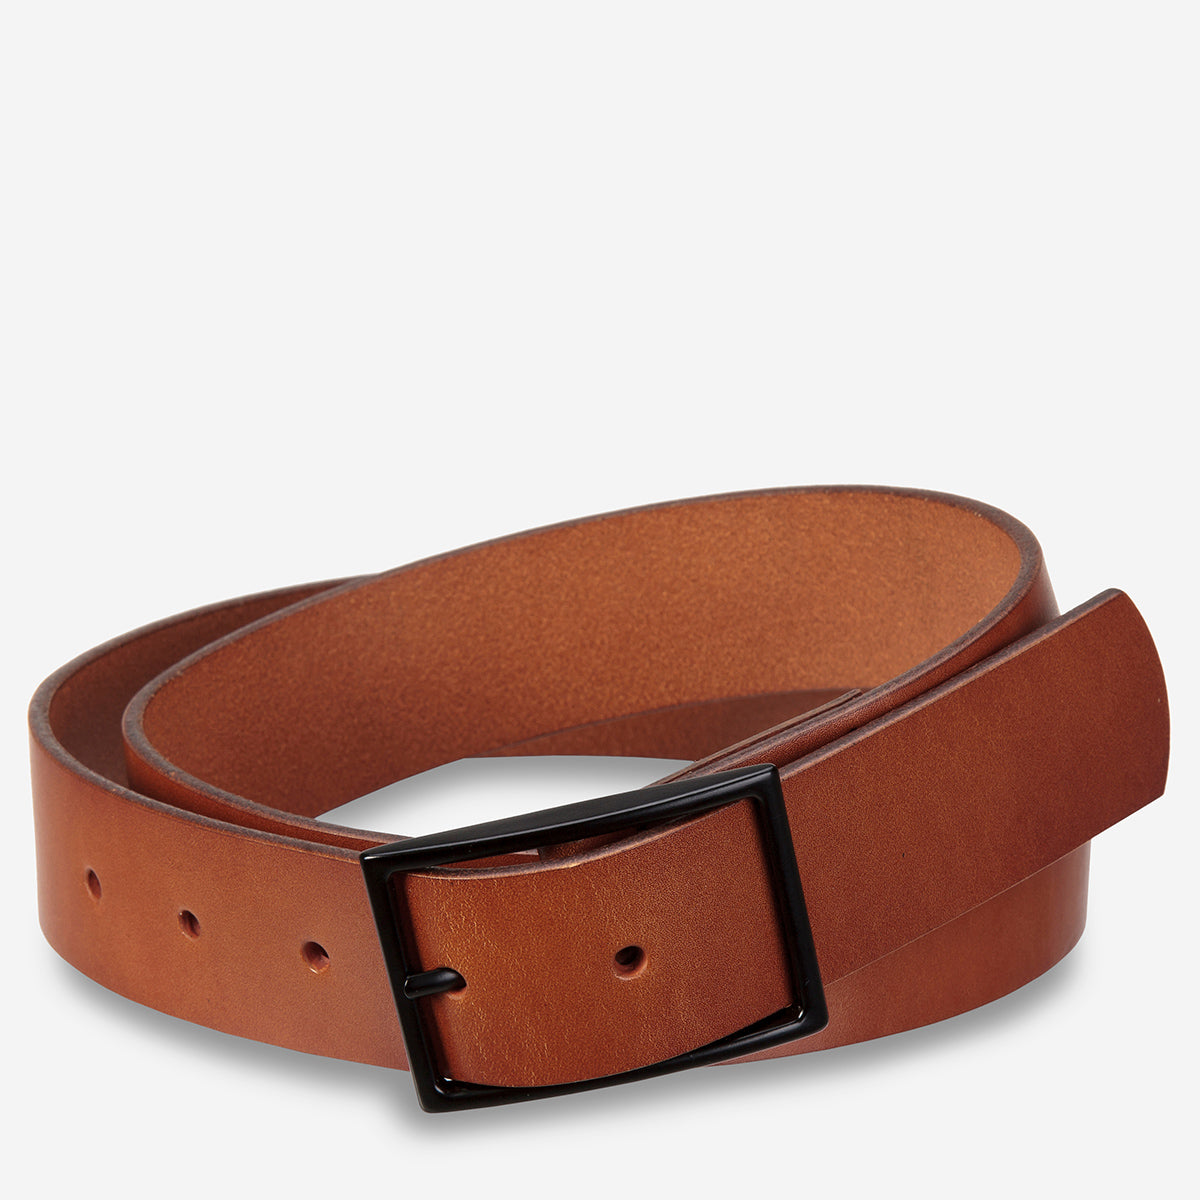 Status Anxiety Natural Corruption Men's Leather Belt - Tan